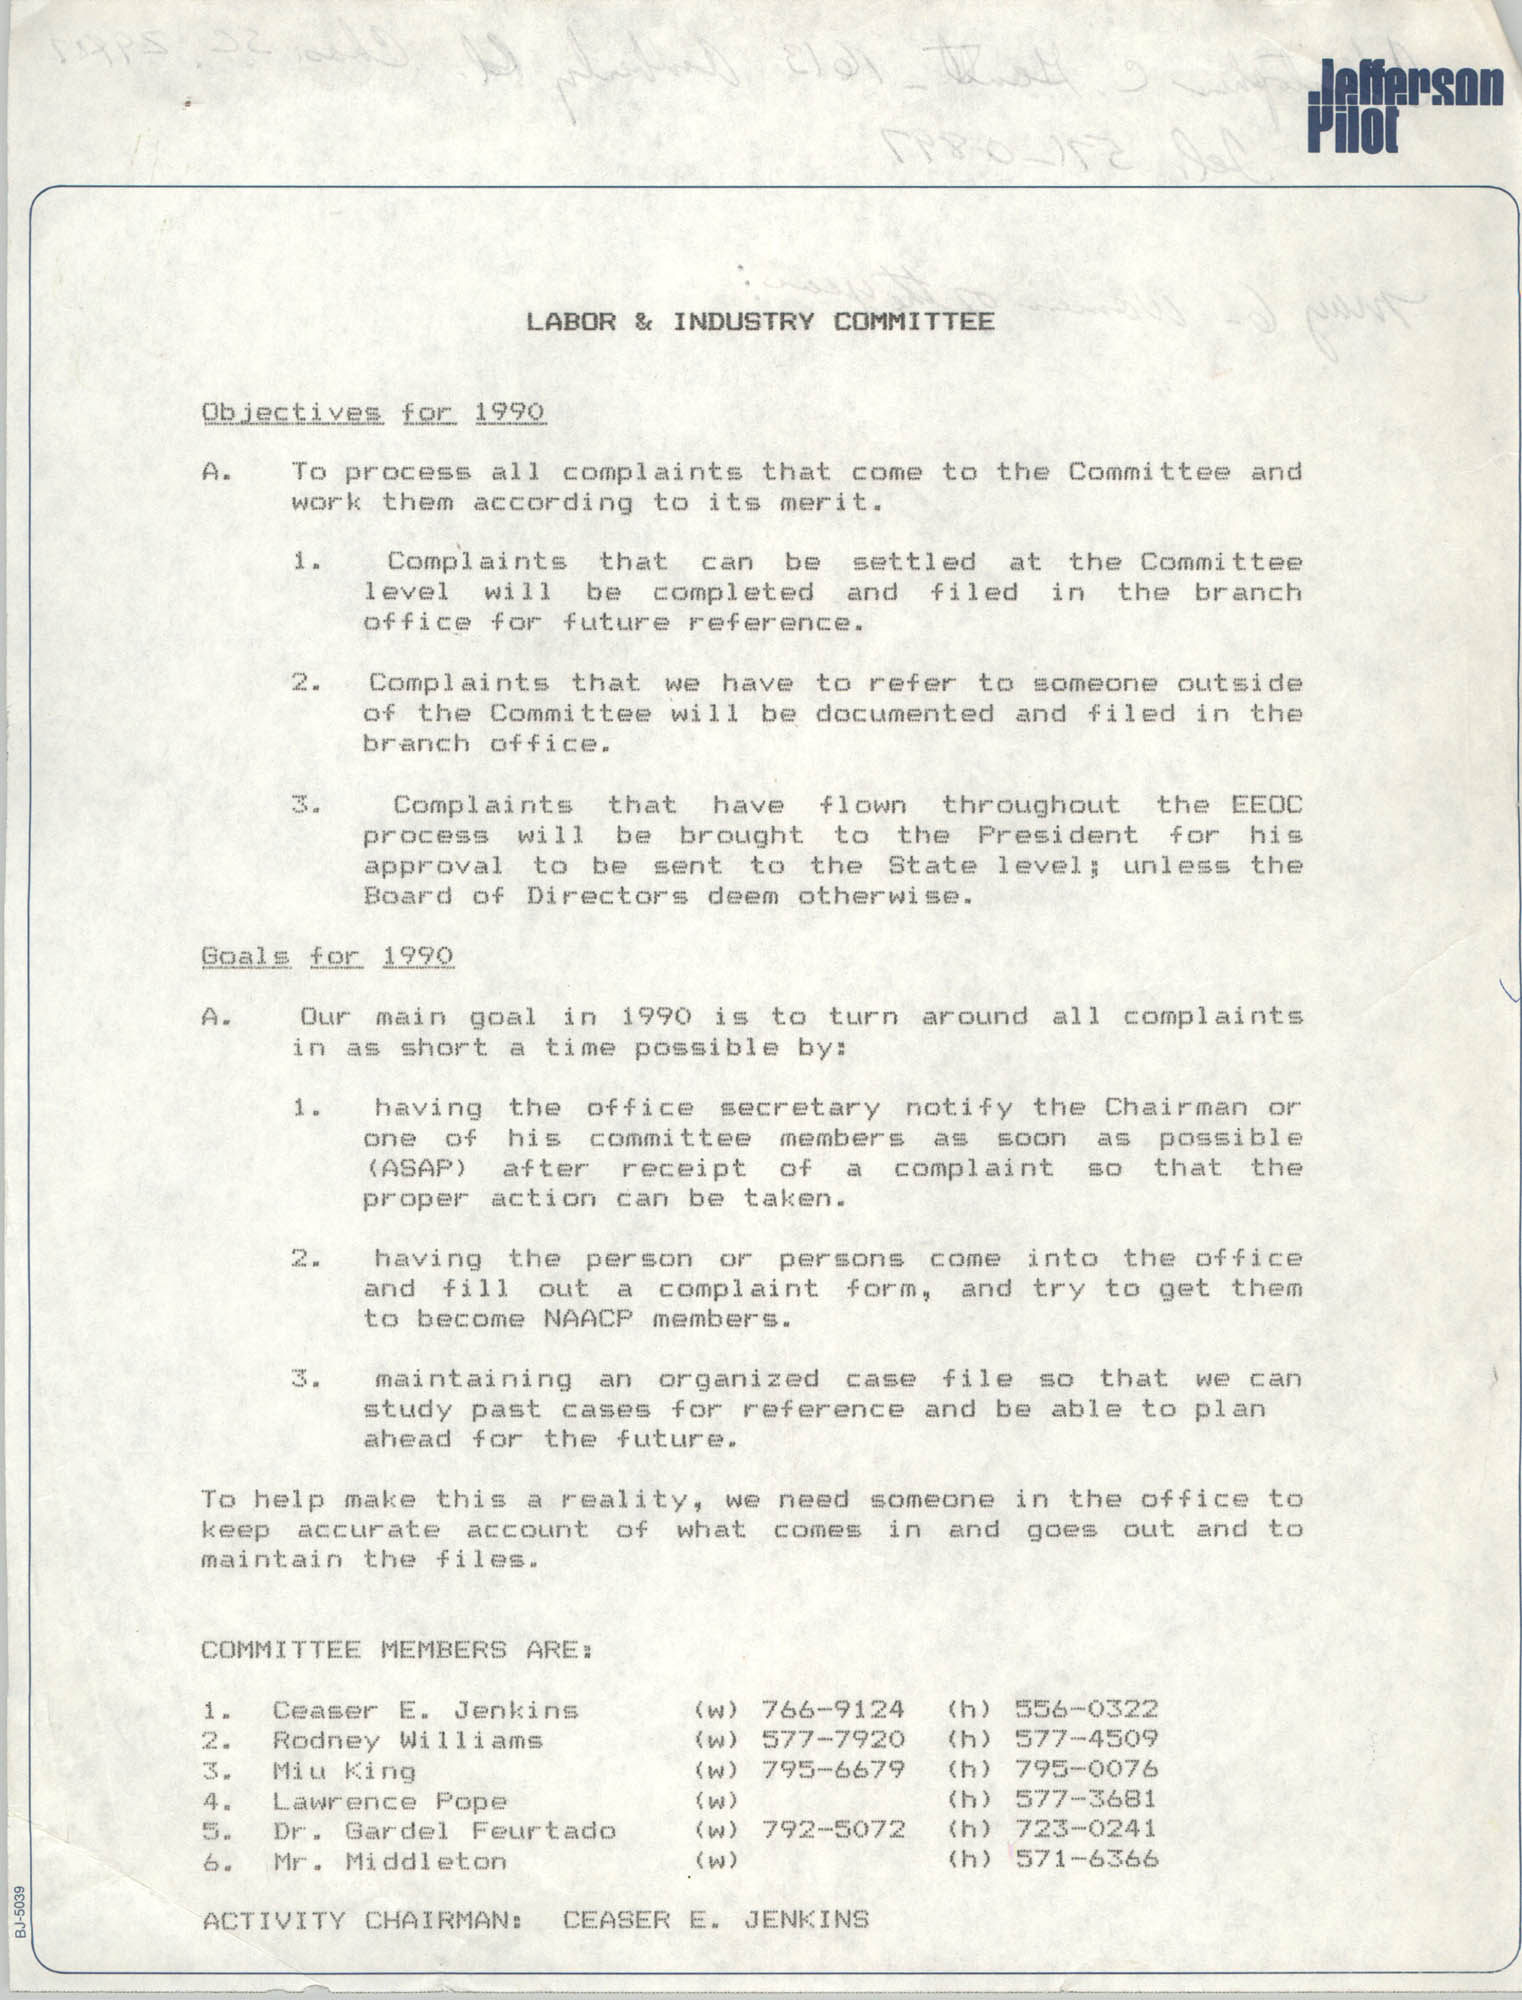 Charleston Branch of the NAACP Labor and Industry Committee Committee, 1990